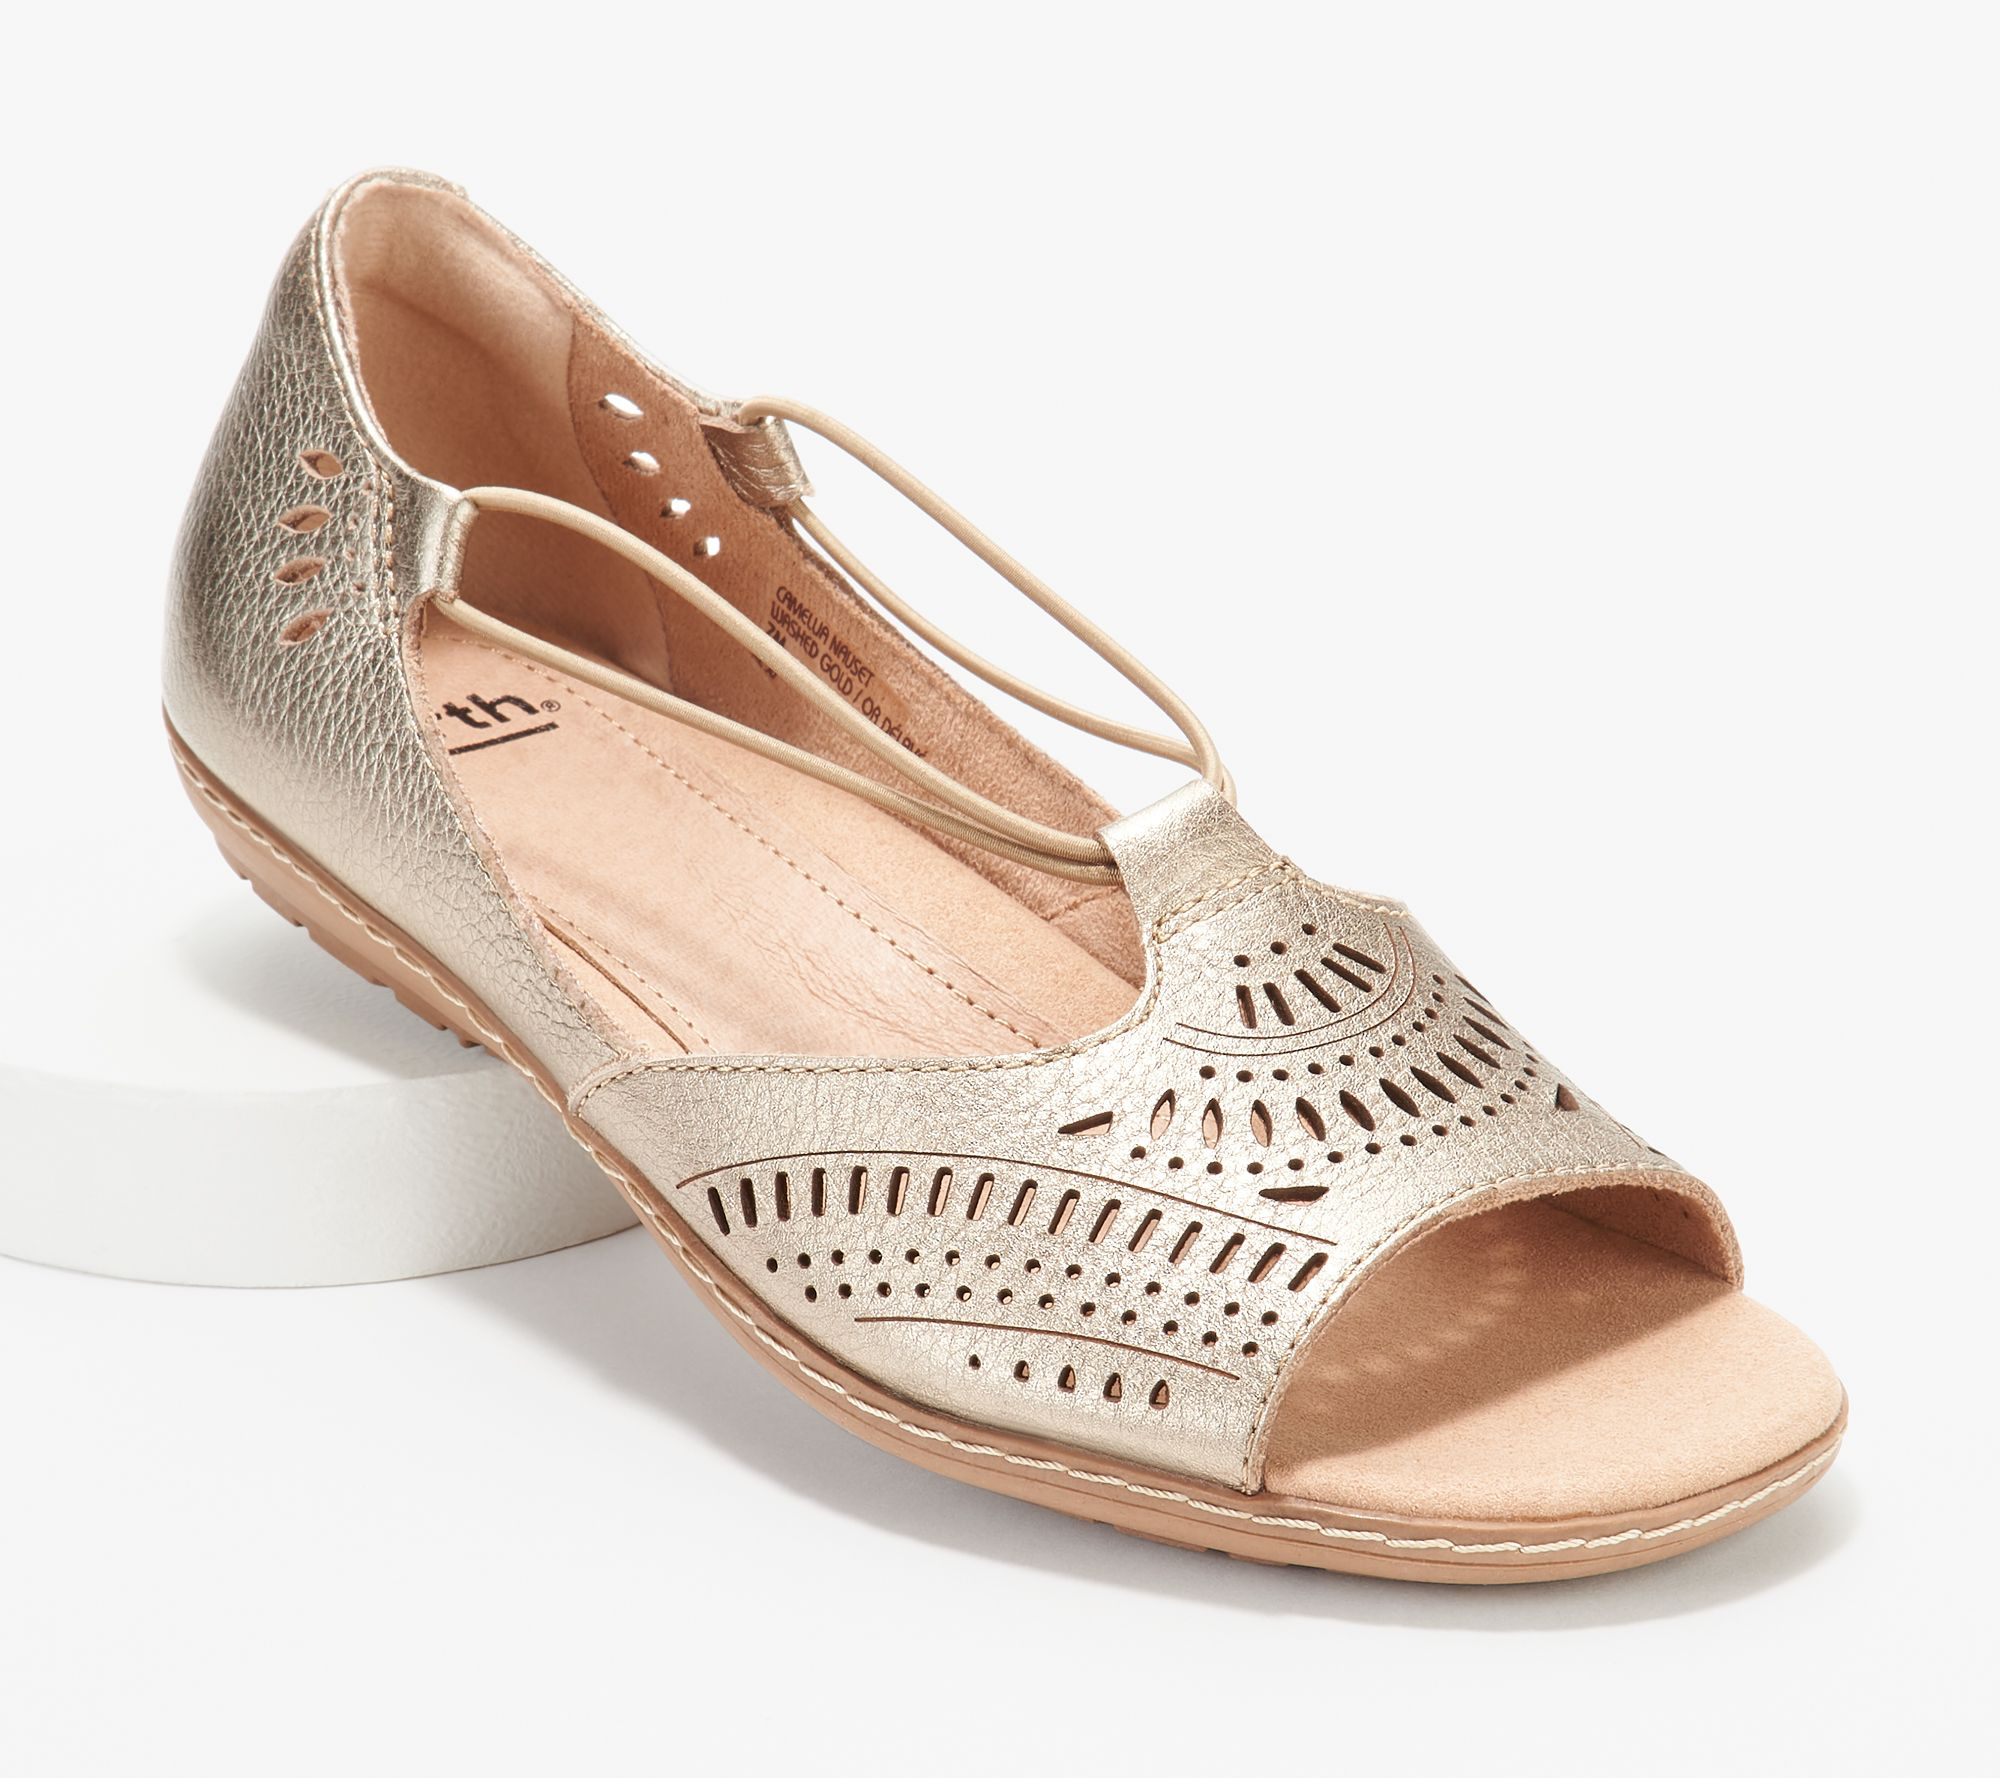 67b441c5f Earth Leather Perforated Slip-on Sandals - Camellia Nauset - Page 1 —  QVC.com